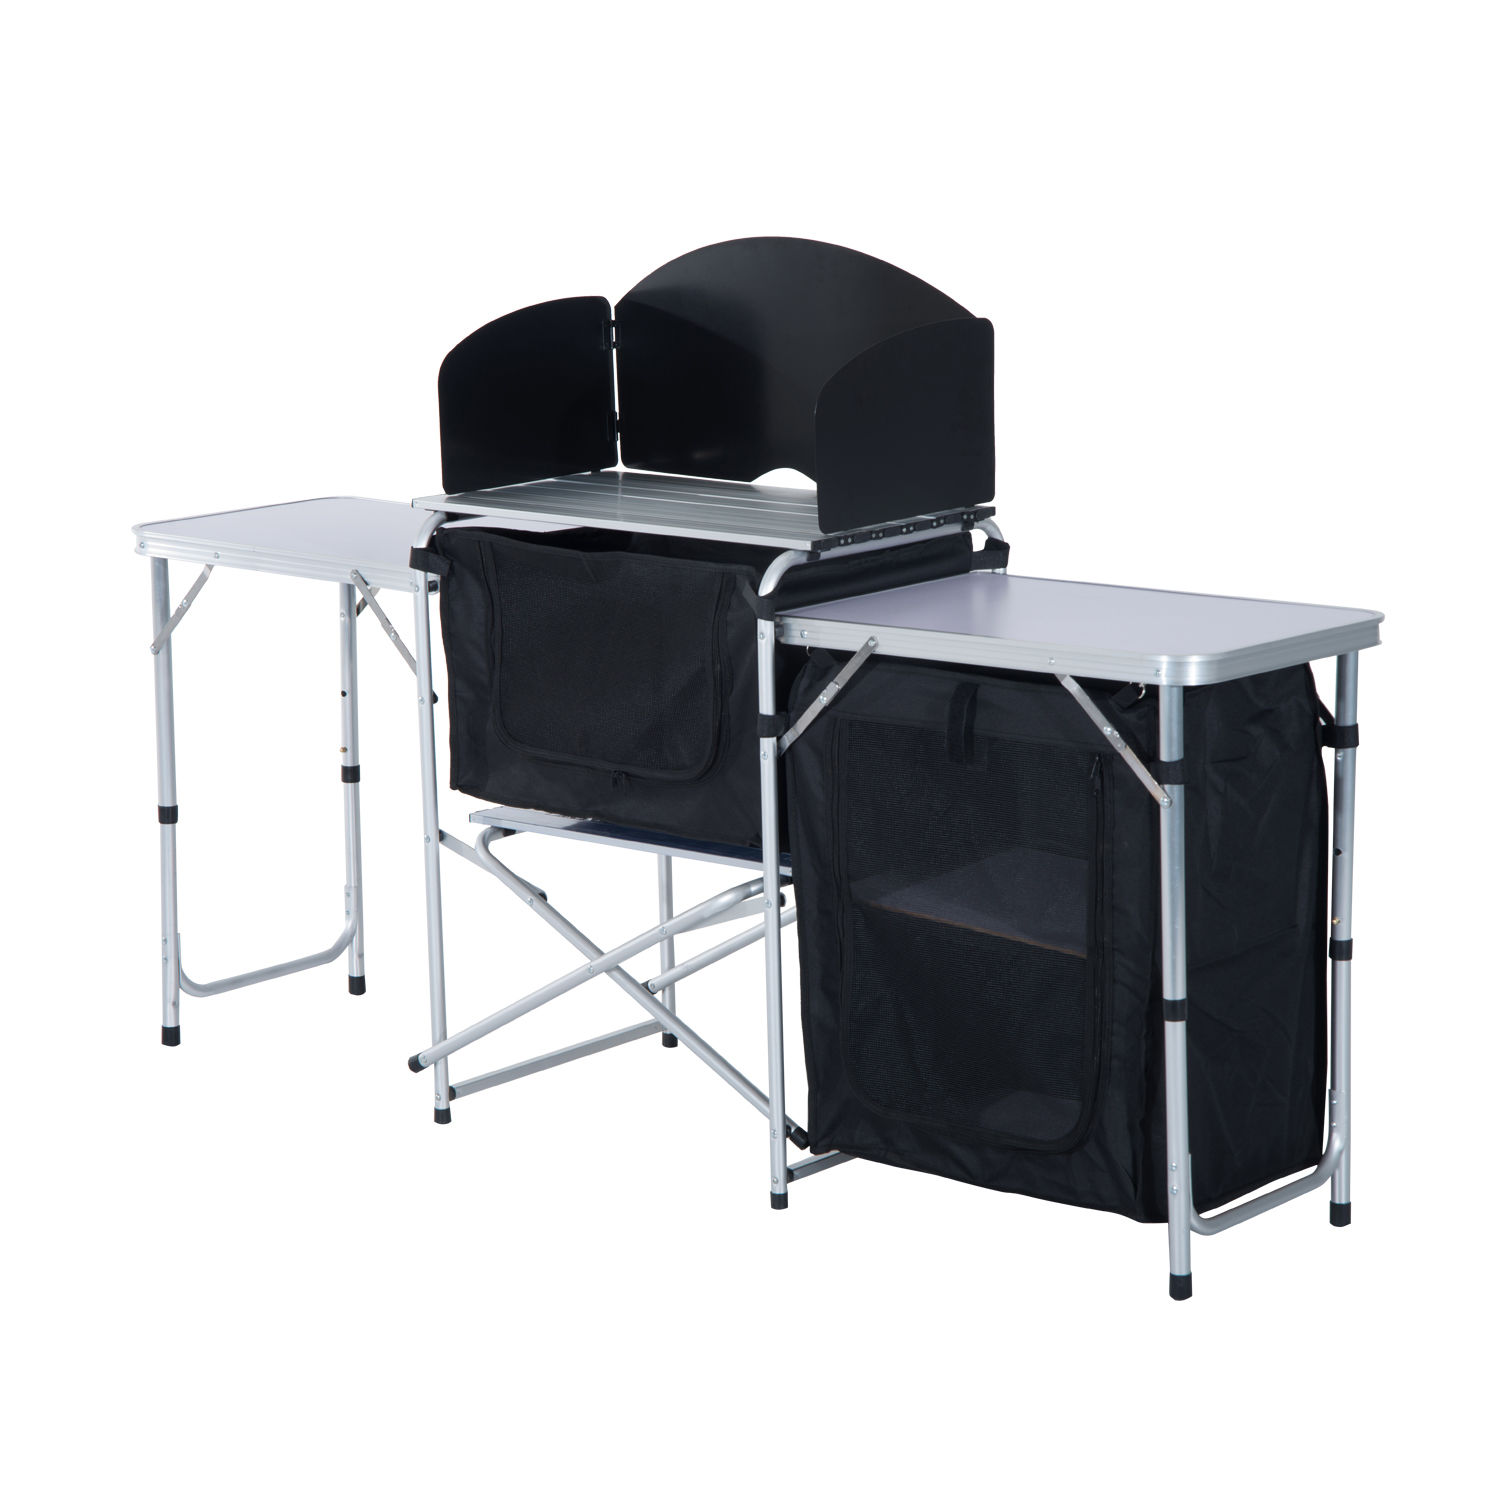 6 Portable Fold Up Camp Kitchen With Windscreen